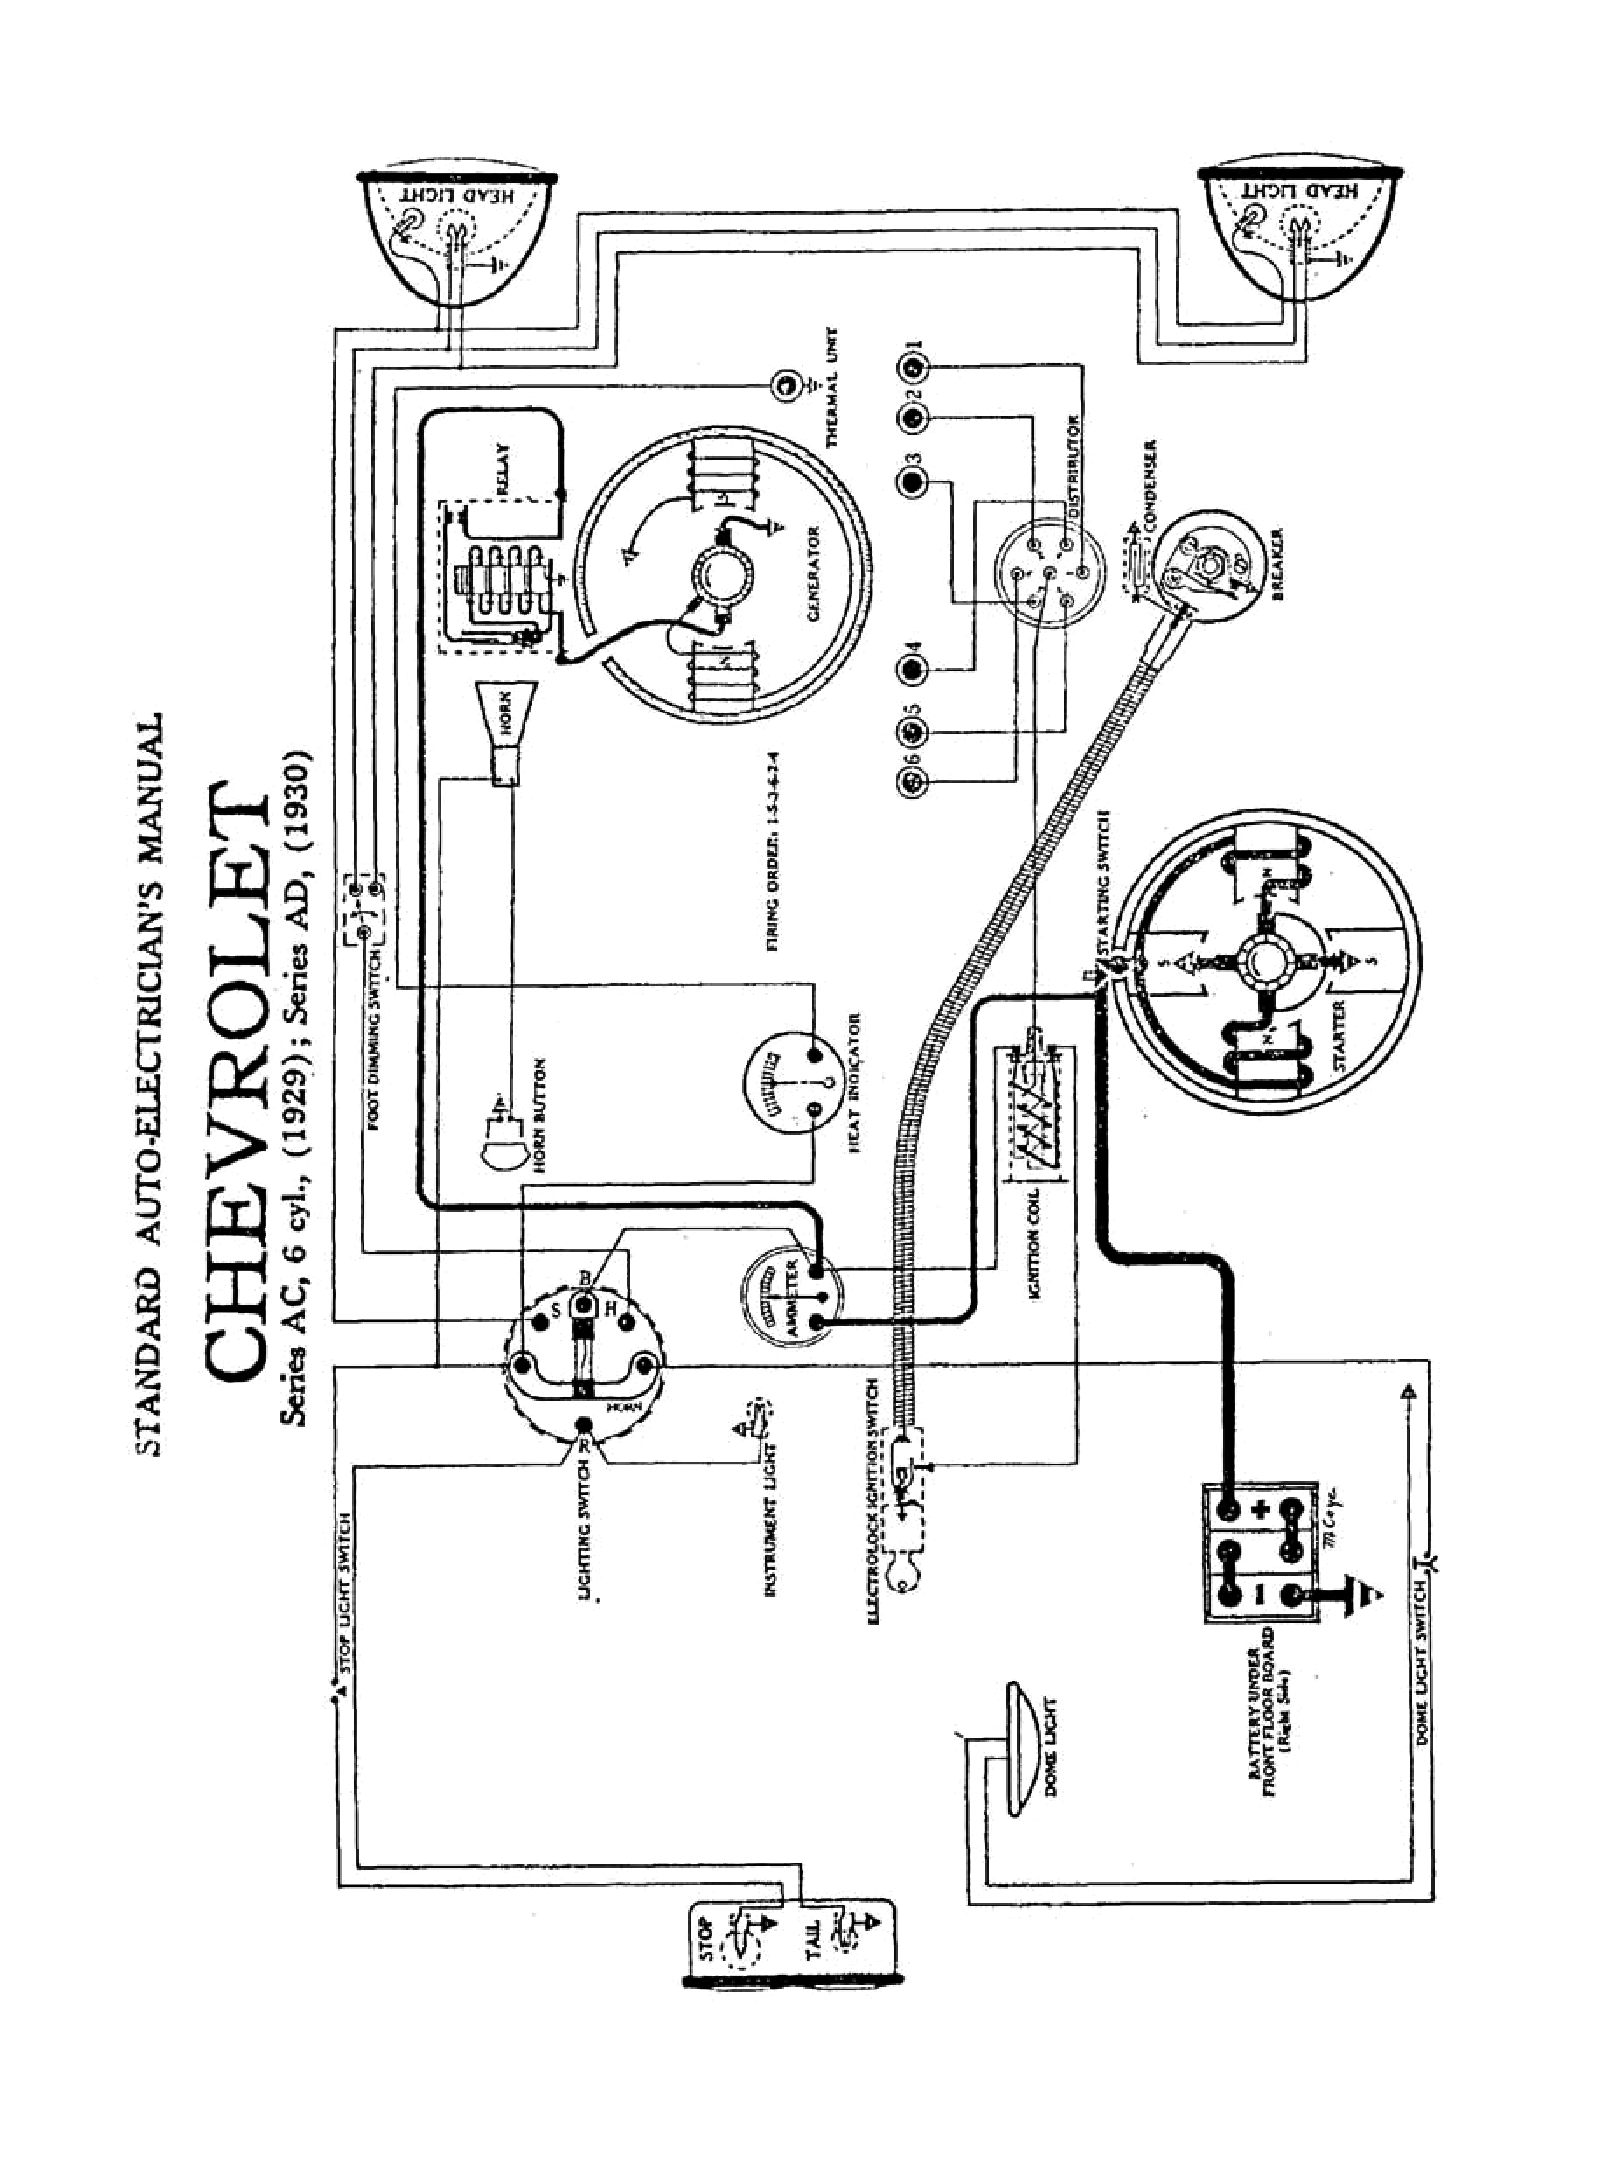 1930 series ad model  1931, 1931 wiring diagrams